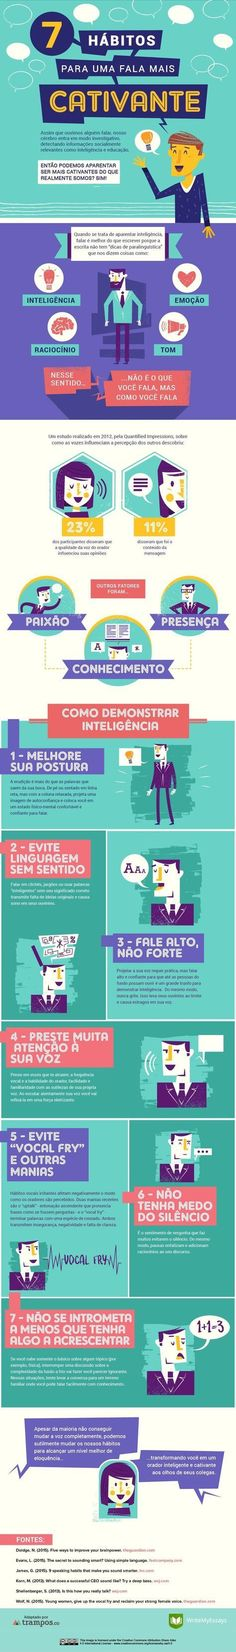 7 Speaking Habits That Will Make You Sound Smarter Infographic - e-Learning Infographics Self Development, Personal Development, Guter Rat, Public Speaking Tips, Presentation Skills, You Sound, How To Sound Smart, Communication Skills, Effective Communication